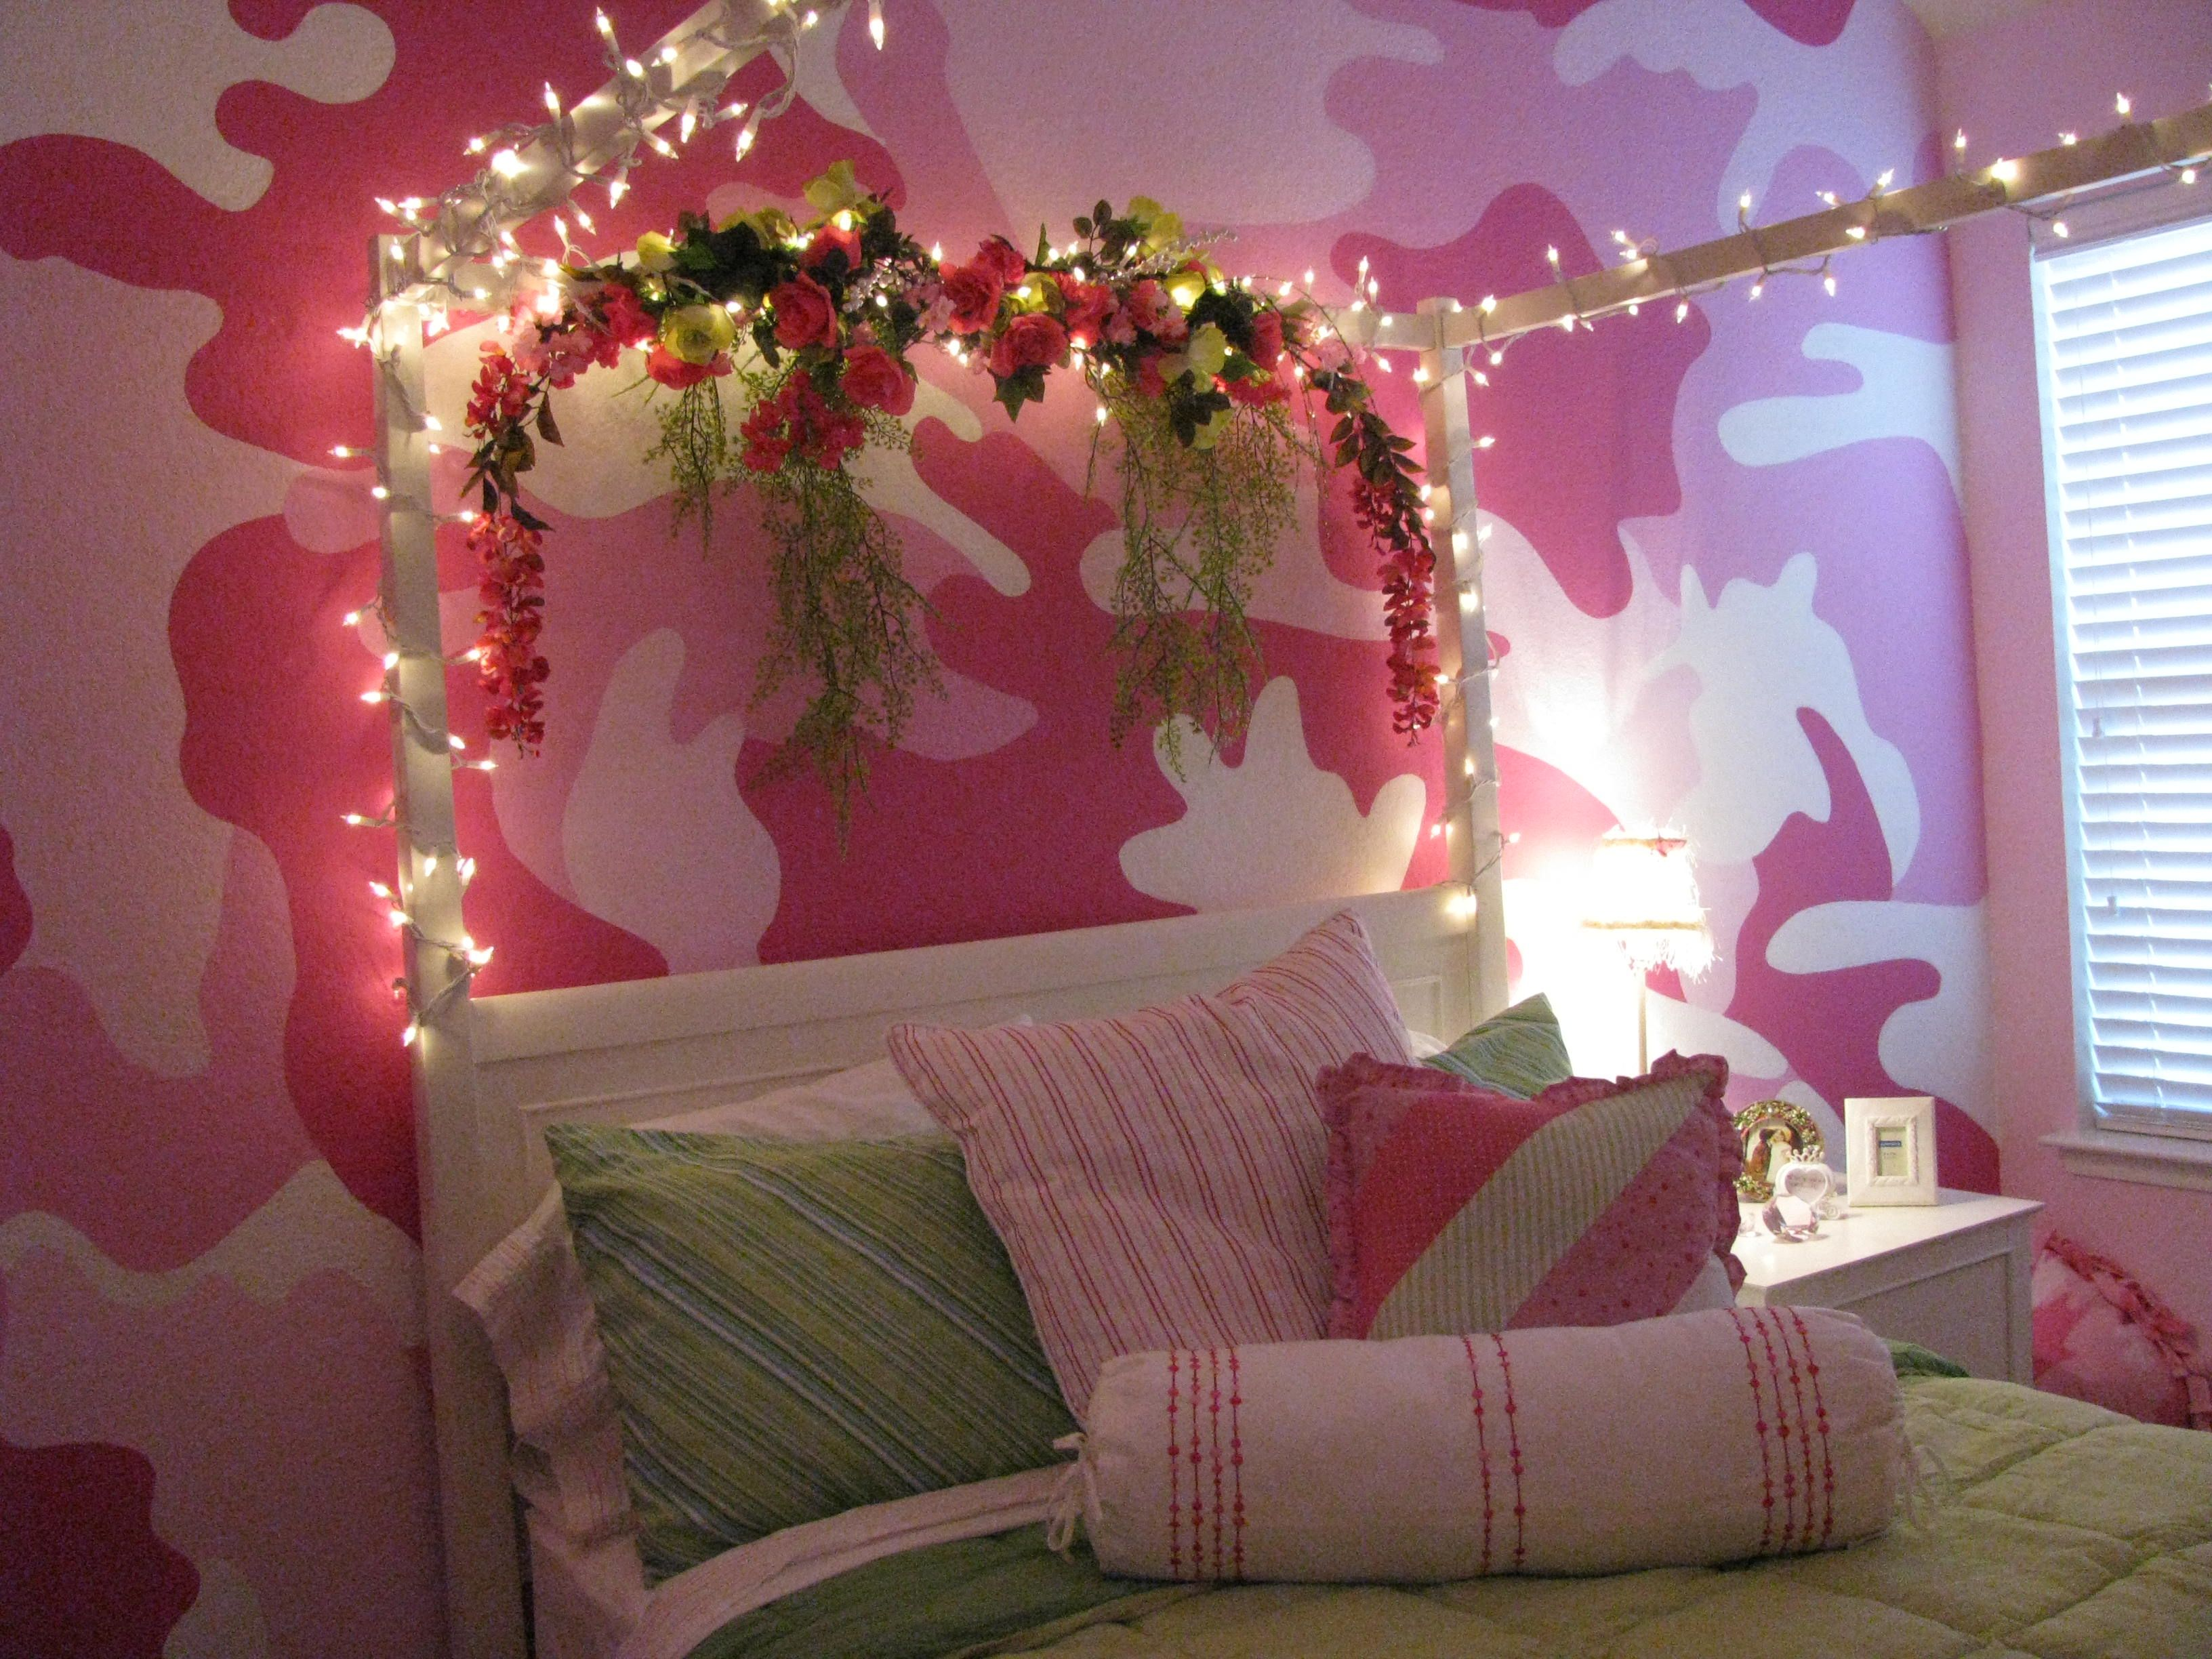 Camouflage Bedroom Ideas Decor Decoration pink camo bedroom, family project we did for my niece! if only she